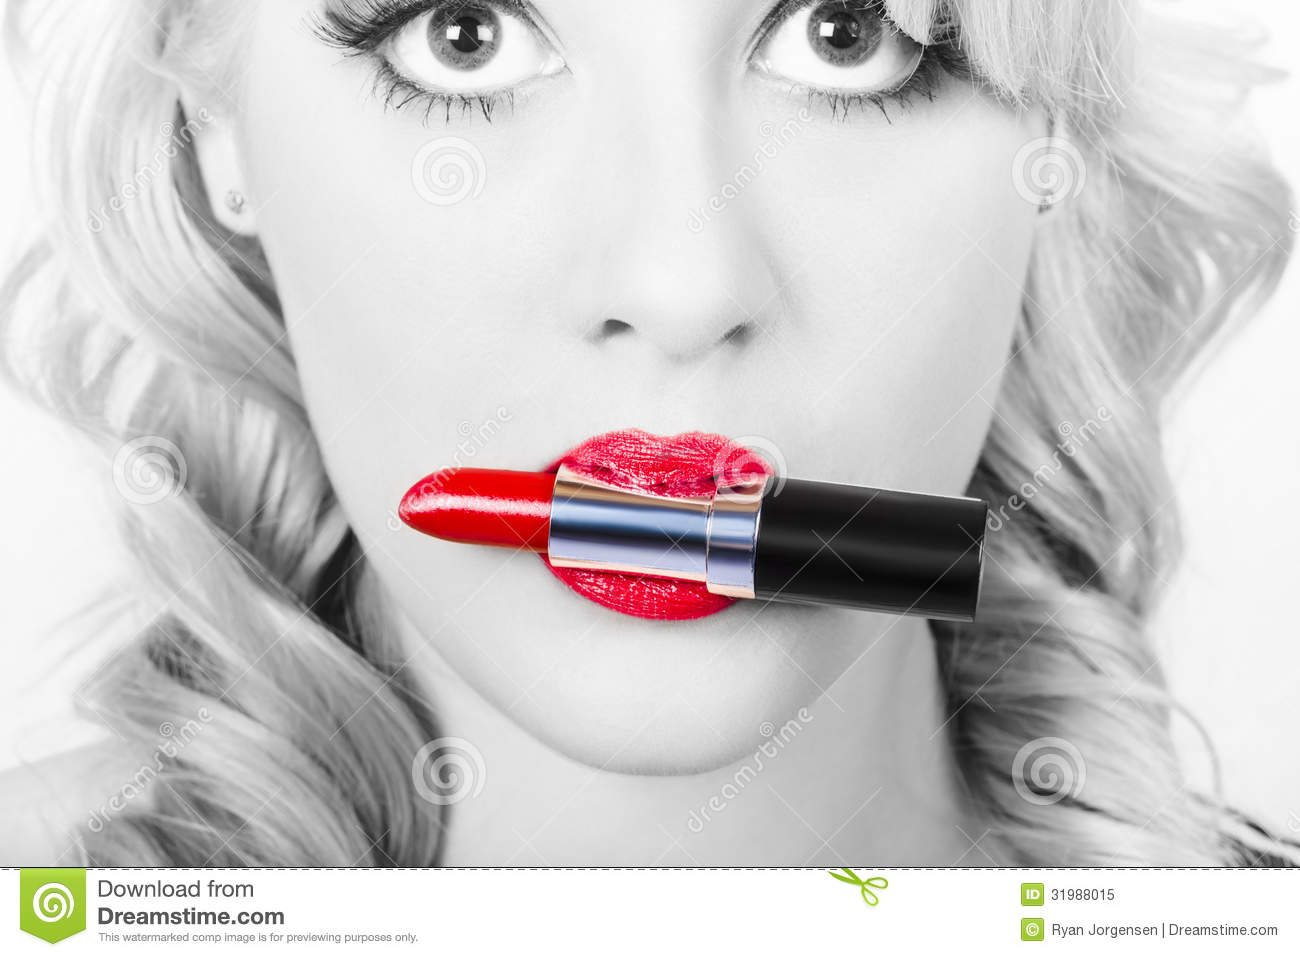 Make Up Closeup Cosmetic Pinup Girl In Lip Makeup Royalty Free Stock Photo Image 31988015